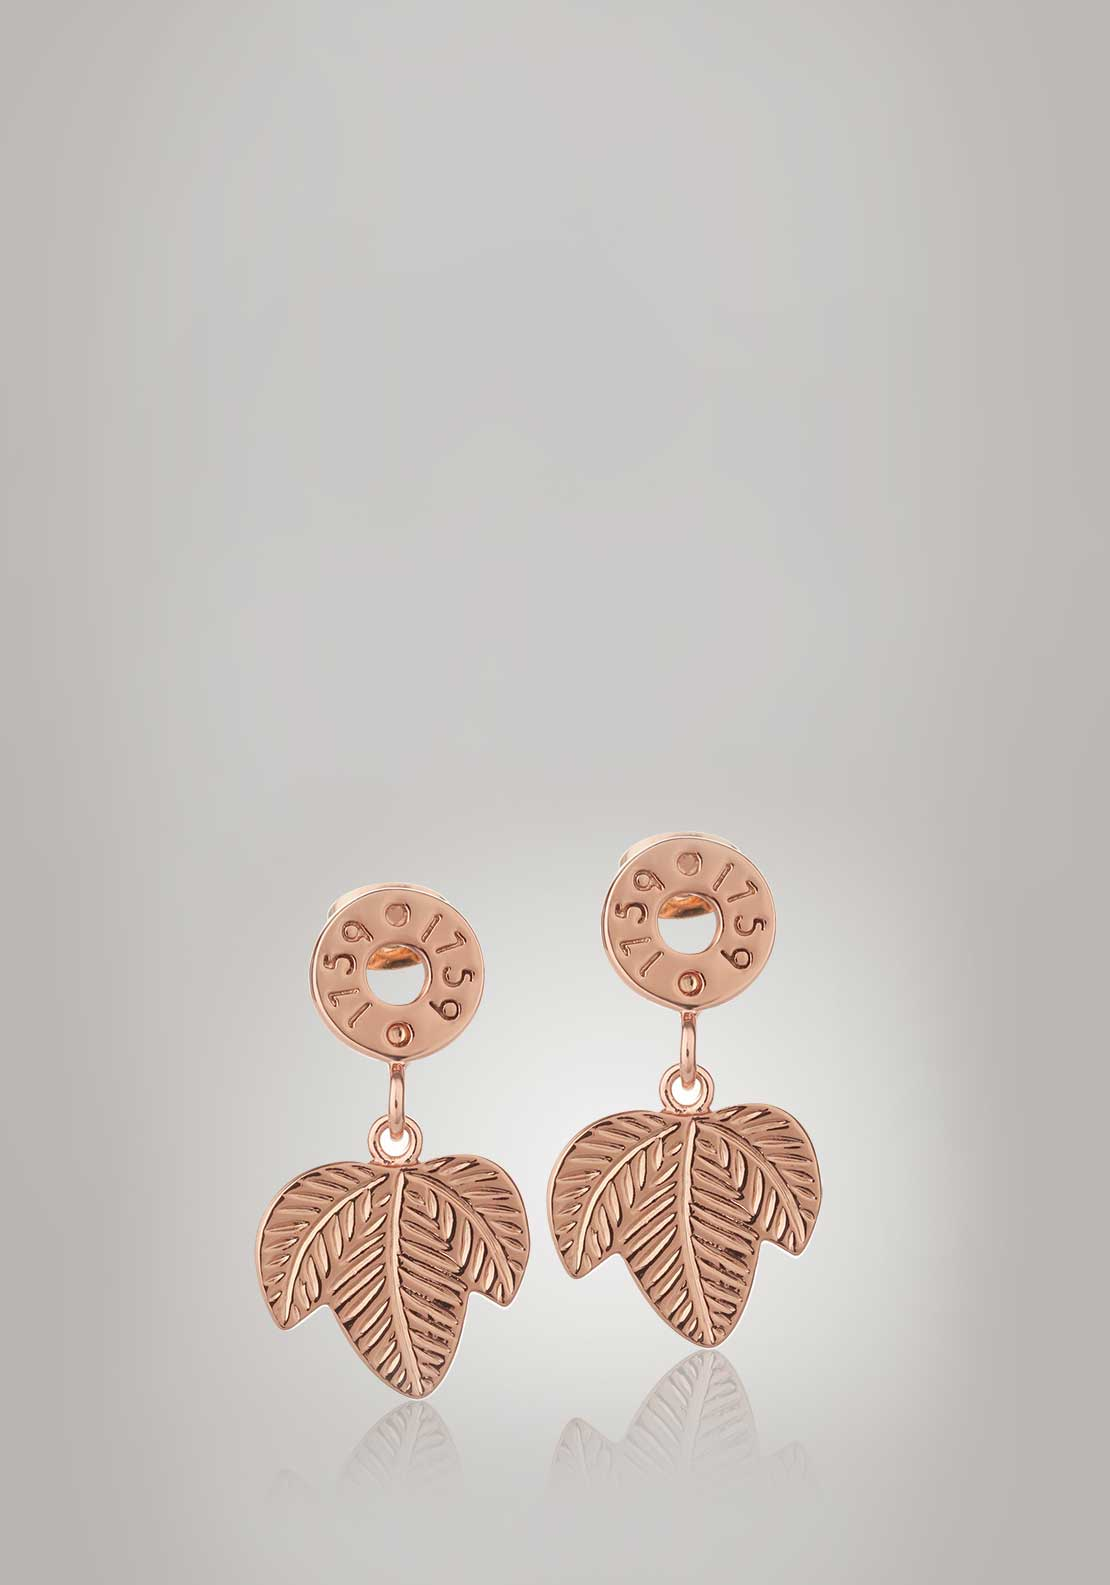 Newbridge Silverware Guinness Leaf Earrings, Rose Gold